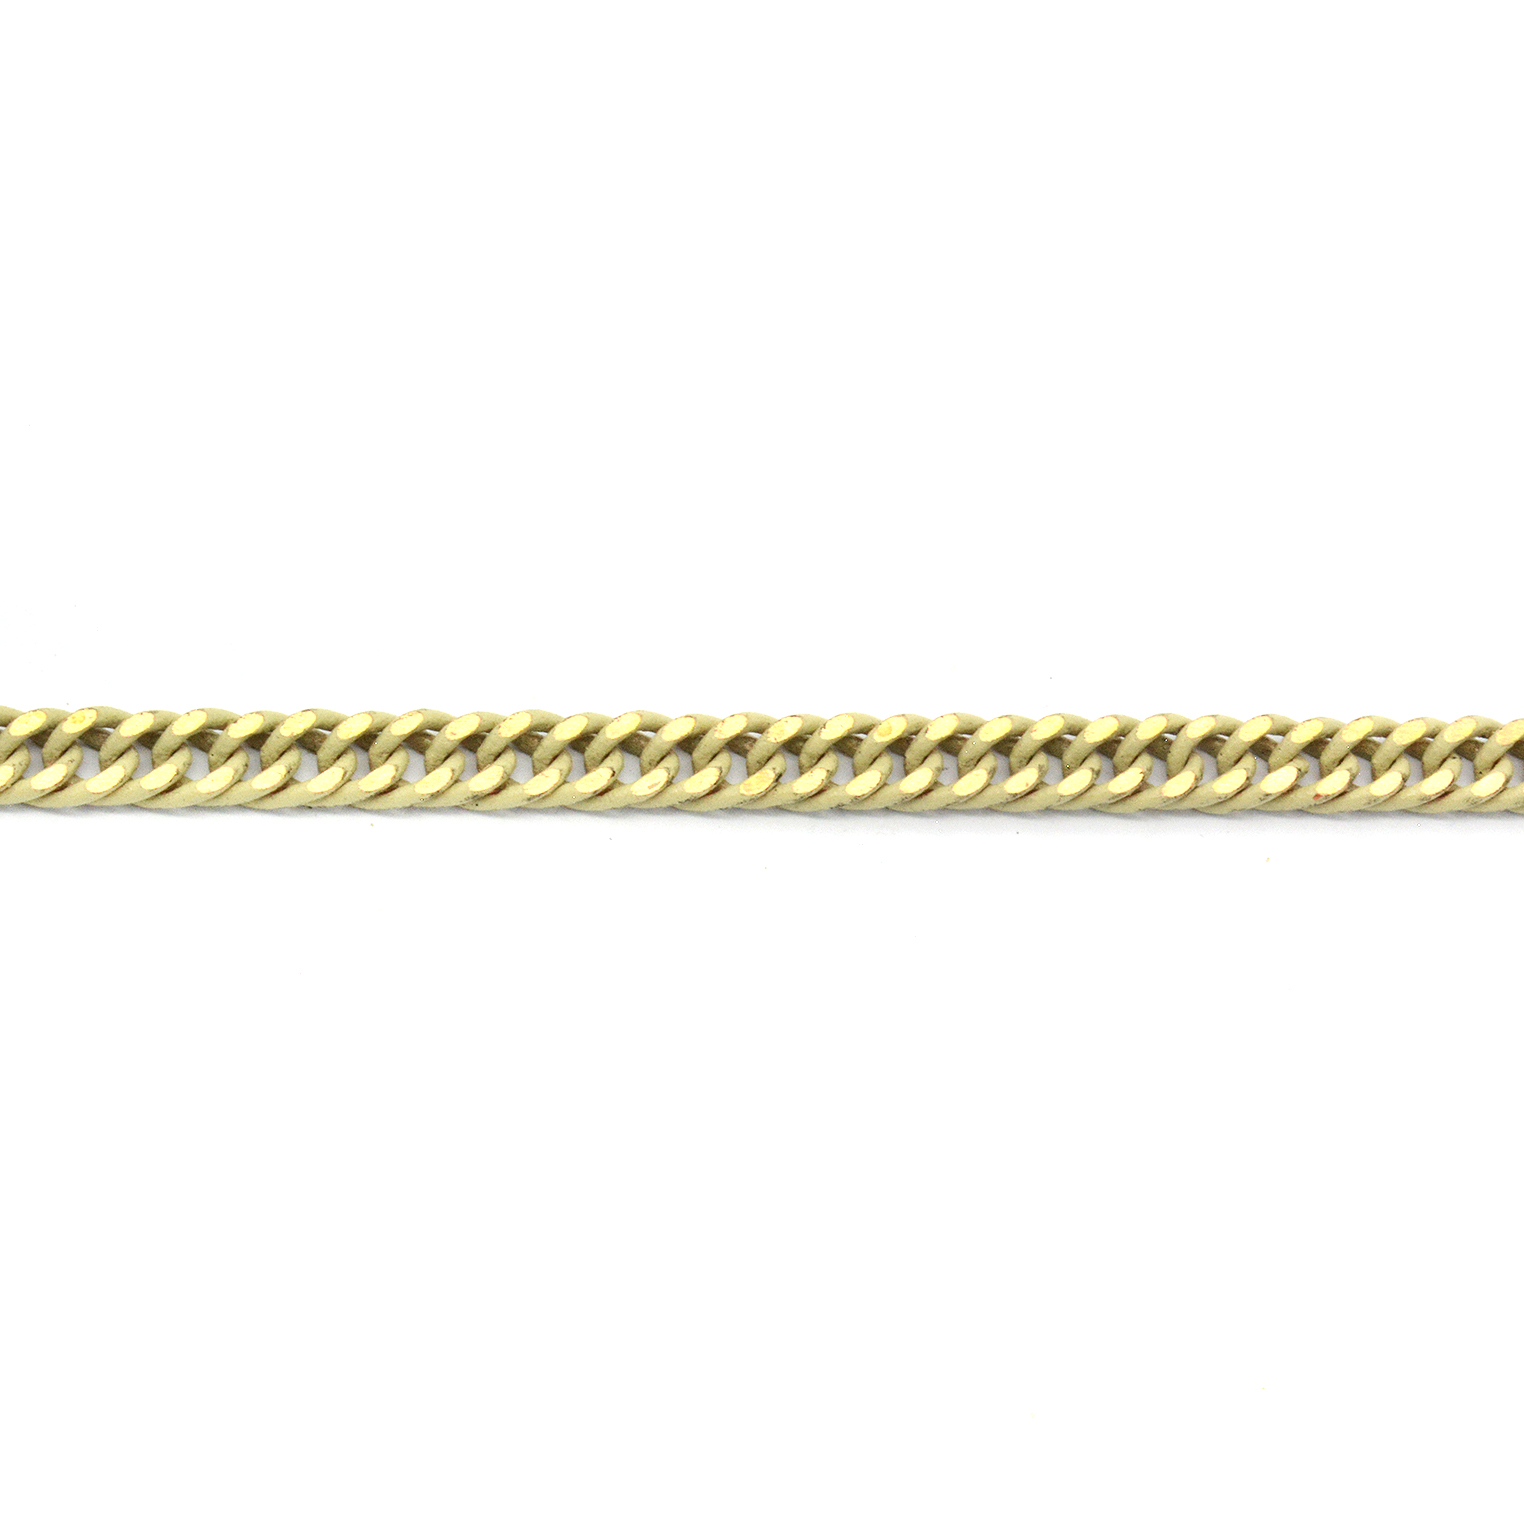 Flat 4mm Cream with Gold touch Gourmet Chain